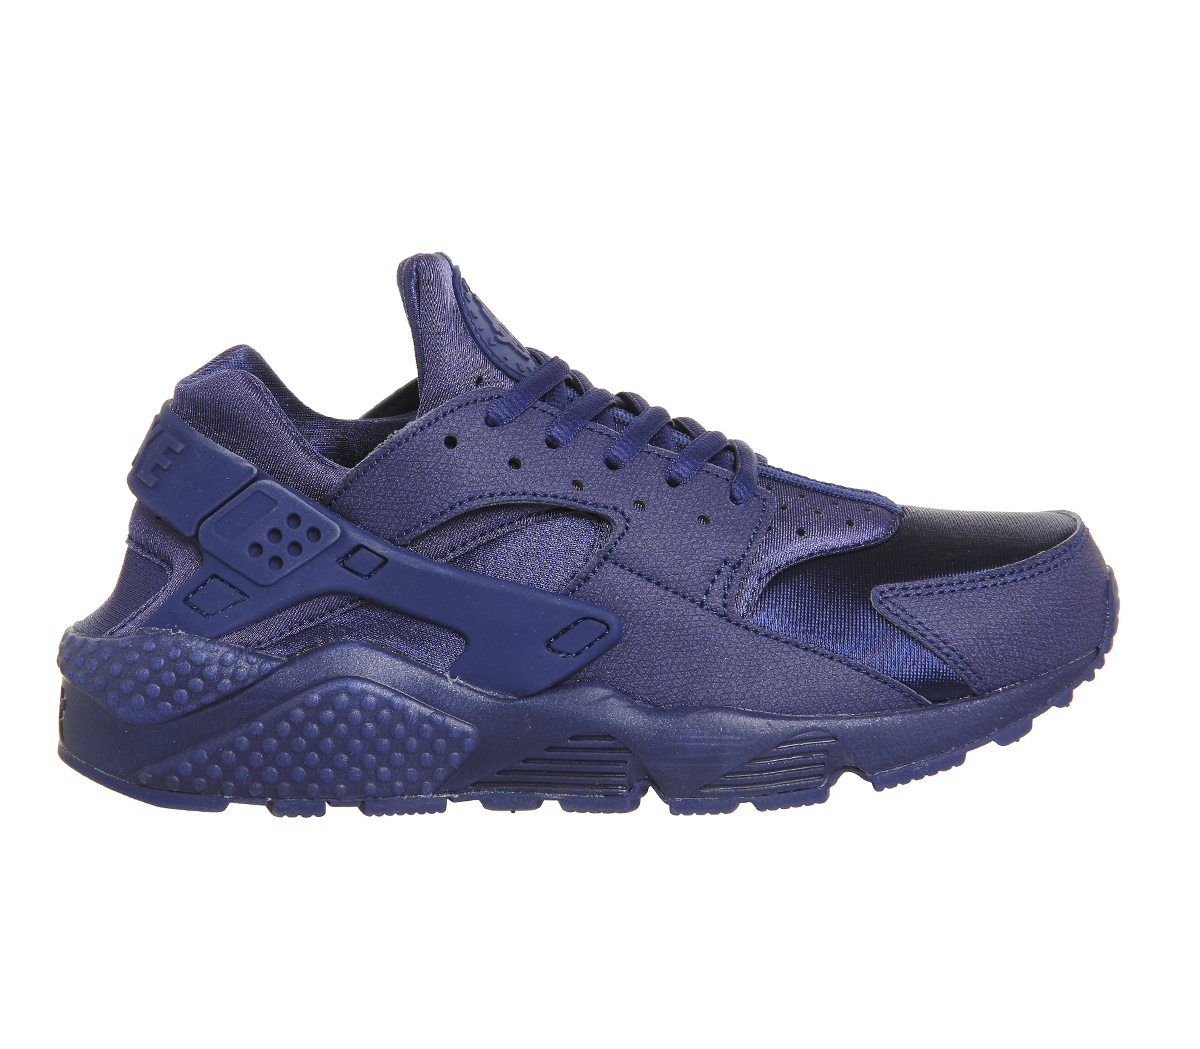 Nike Air Huarache In Blue For Men Lyst